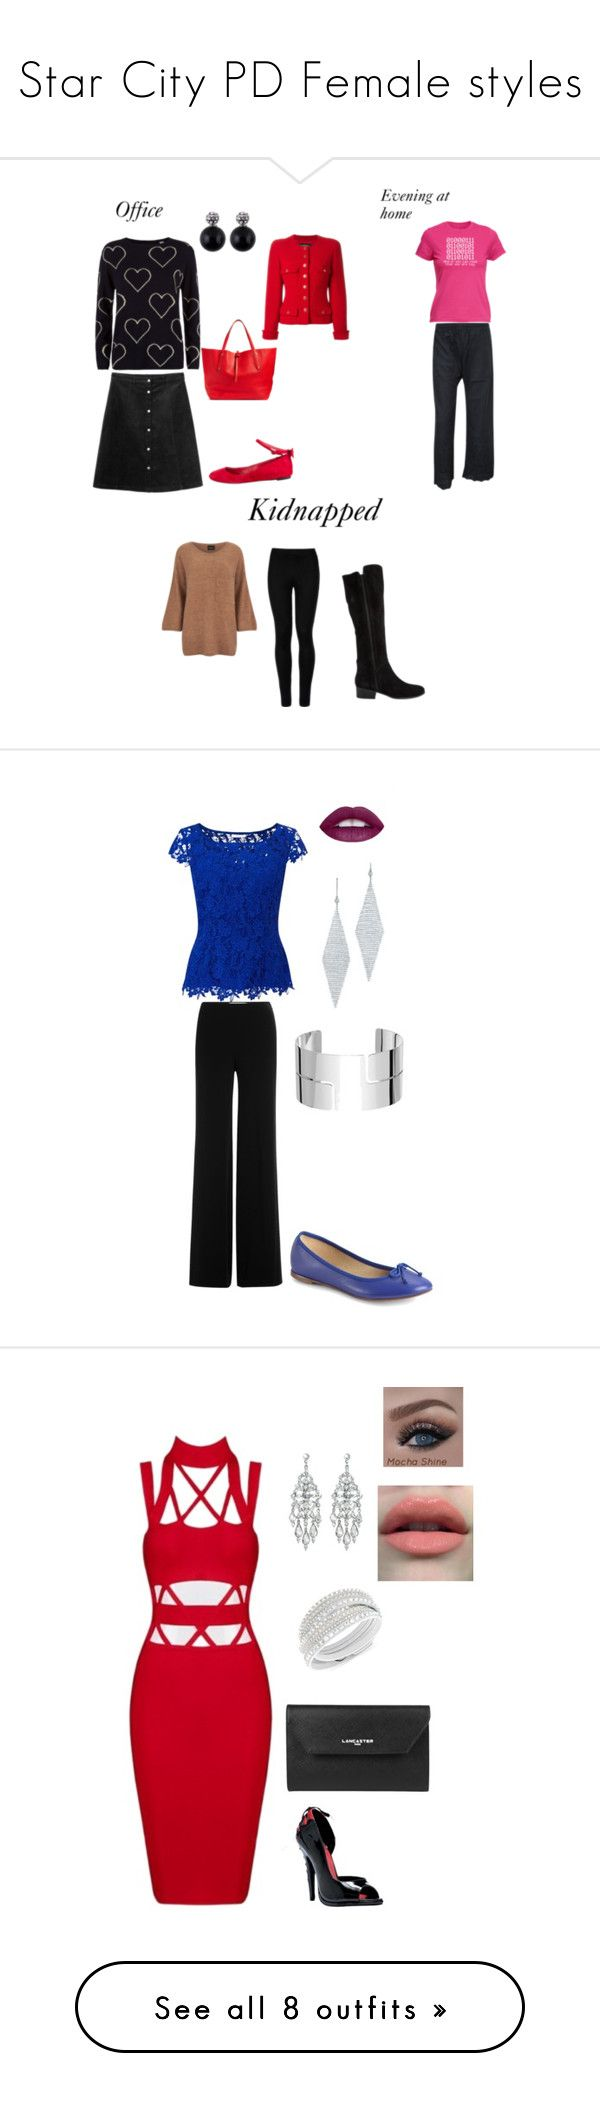 """""""Star City PD Female styles"""" by sara-scott-i on Polyvore featuring Chinti and Parker, Monki, Alice + Olivia, Annabel Ingall, Chanel, Wolford, VILA, Steve Madden, Jacques Vert and Diane Von Furstenberg"""